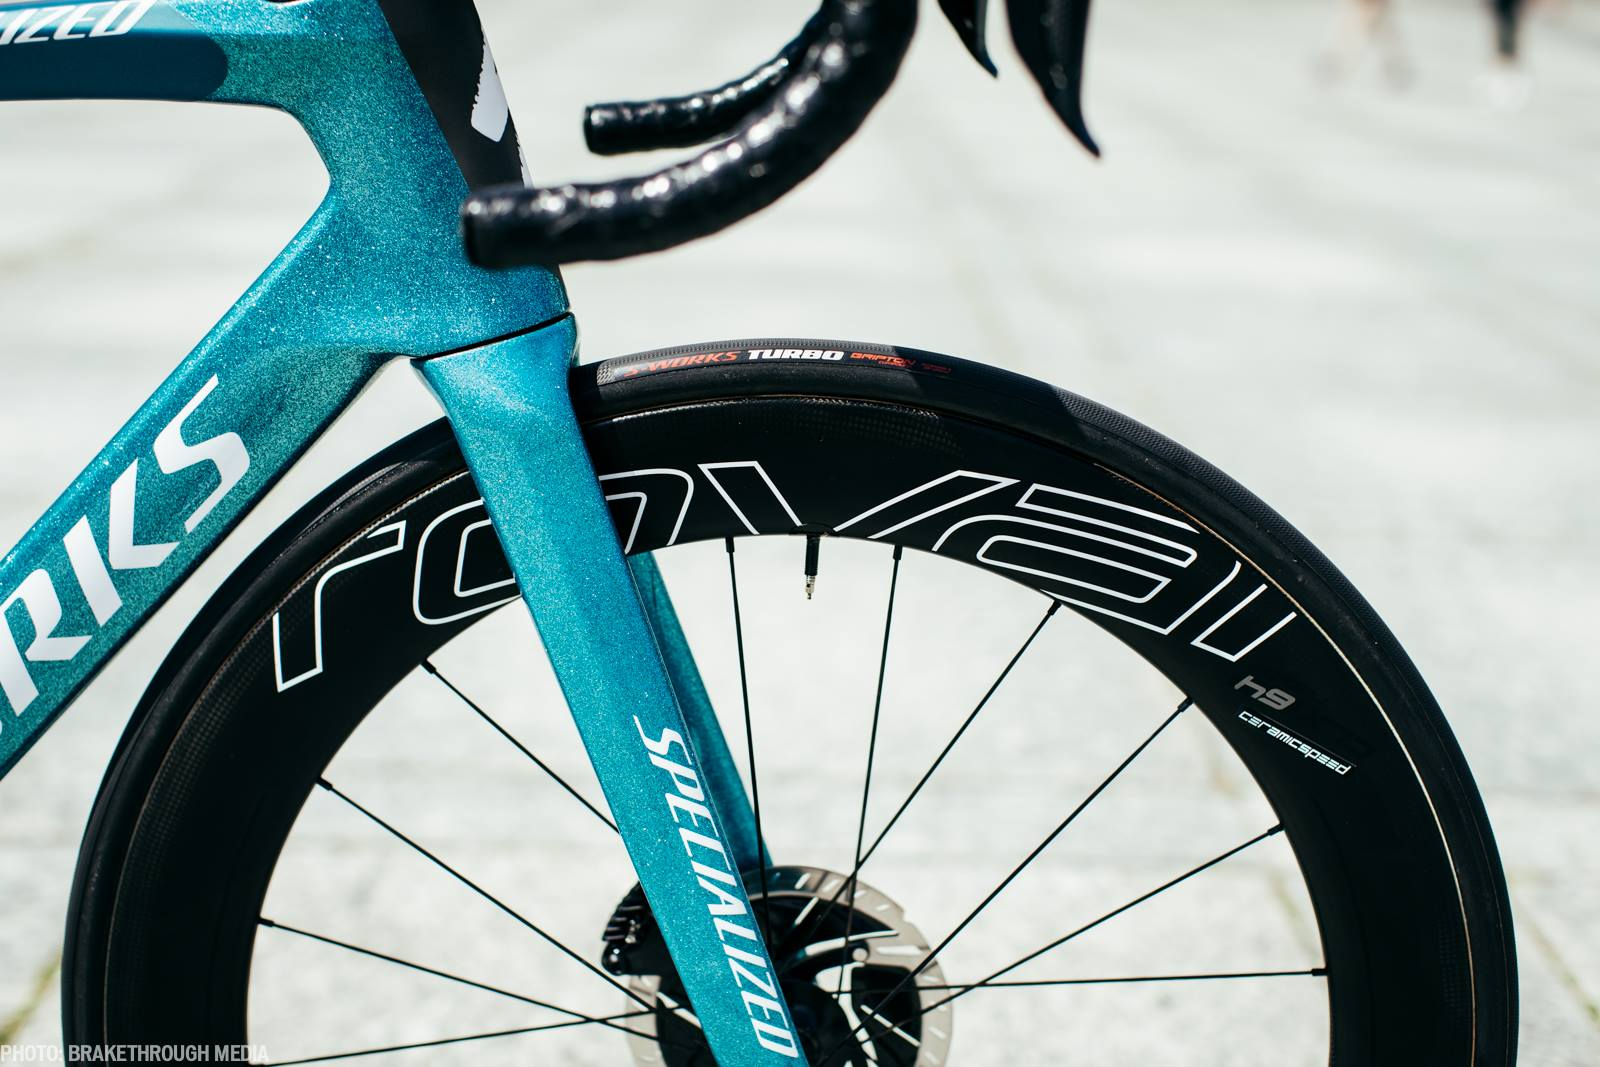 Peter Sagan's S-Works Venge for Tour de France